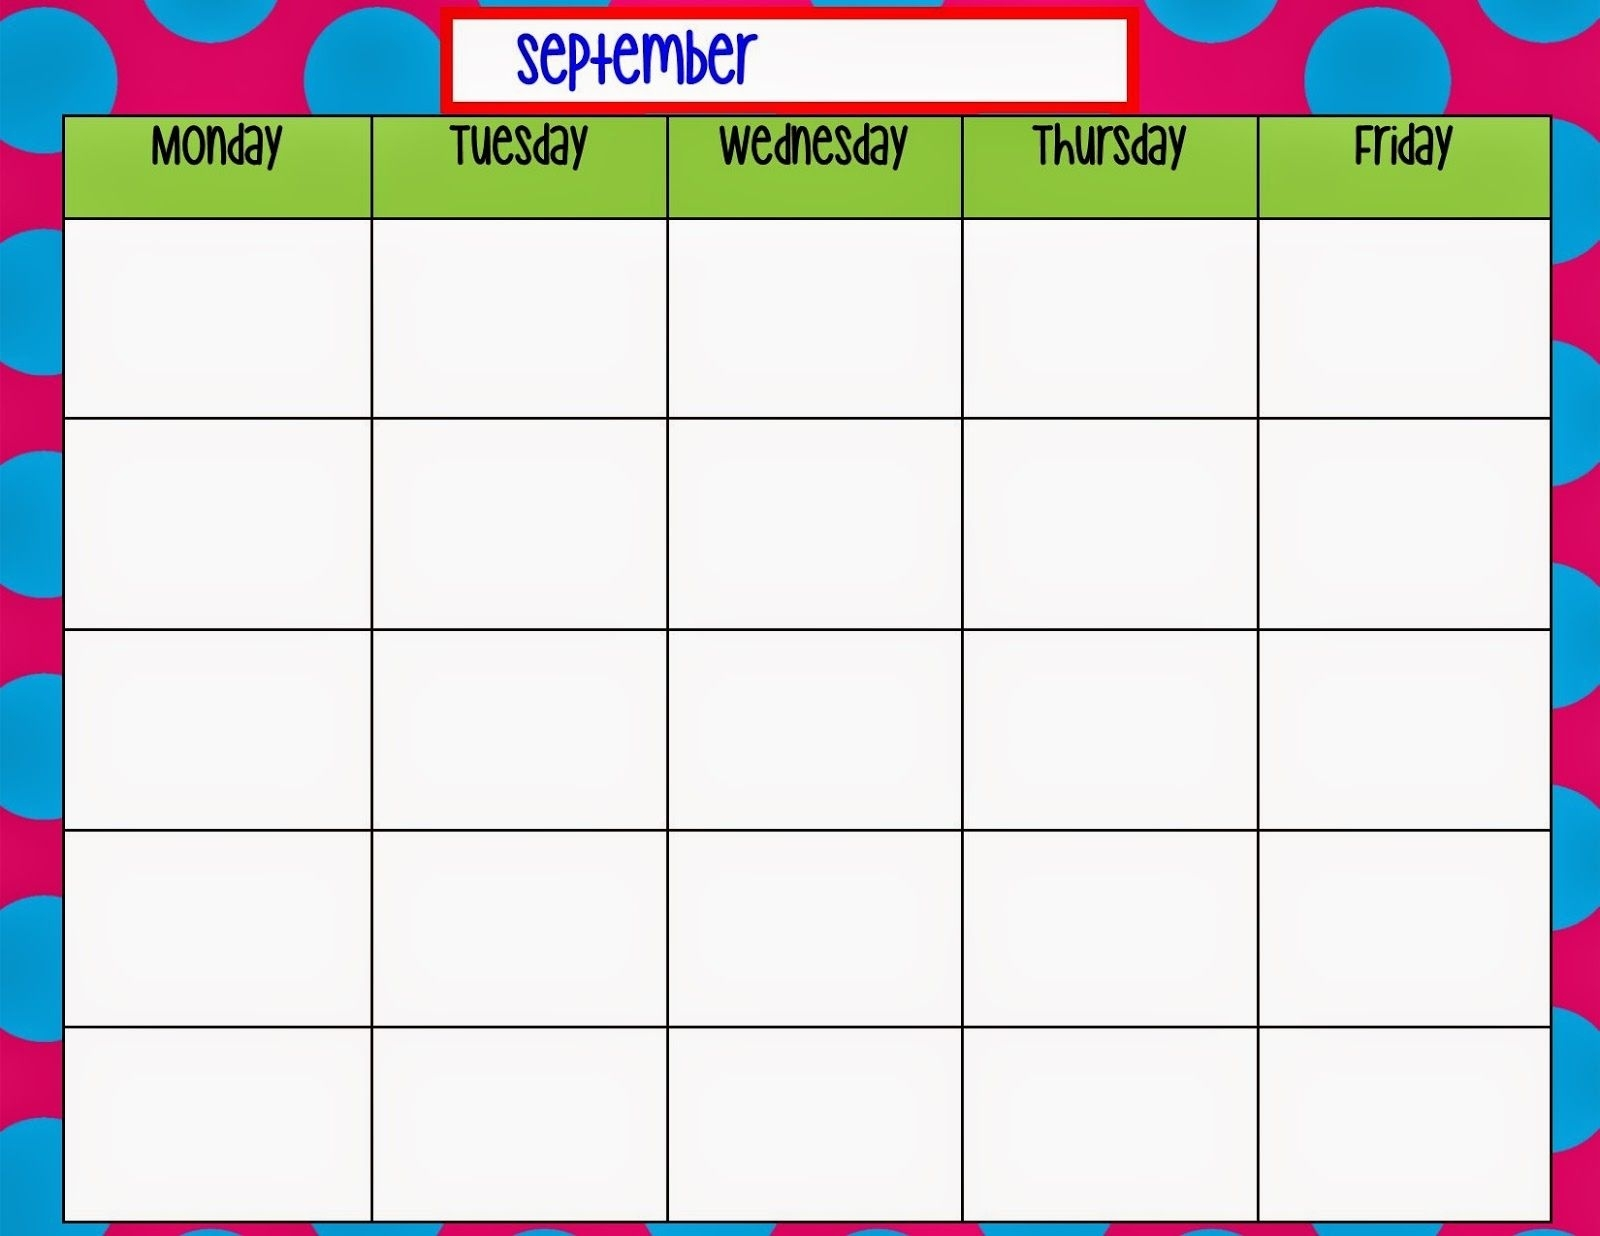 Monday Through Friday Calendar Template | Preschool | Pinterest  Printable Appointment Calendars Monday Through Friday